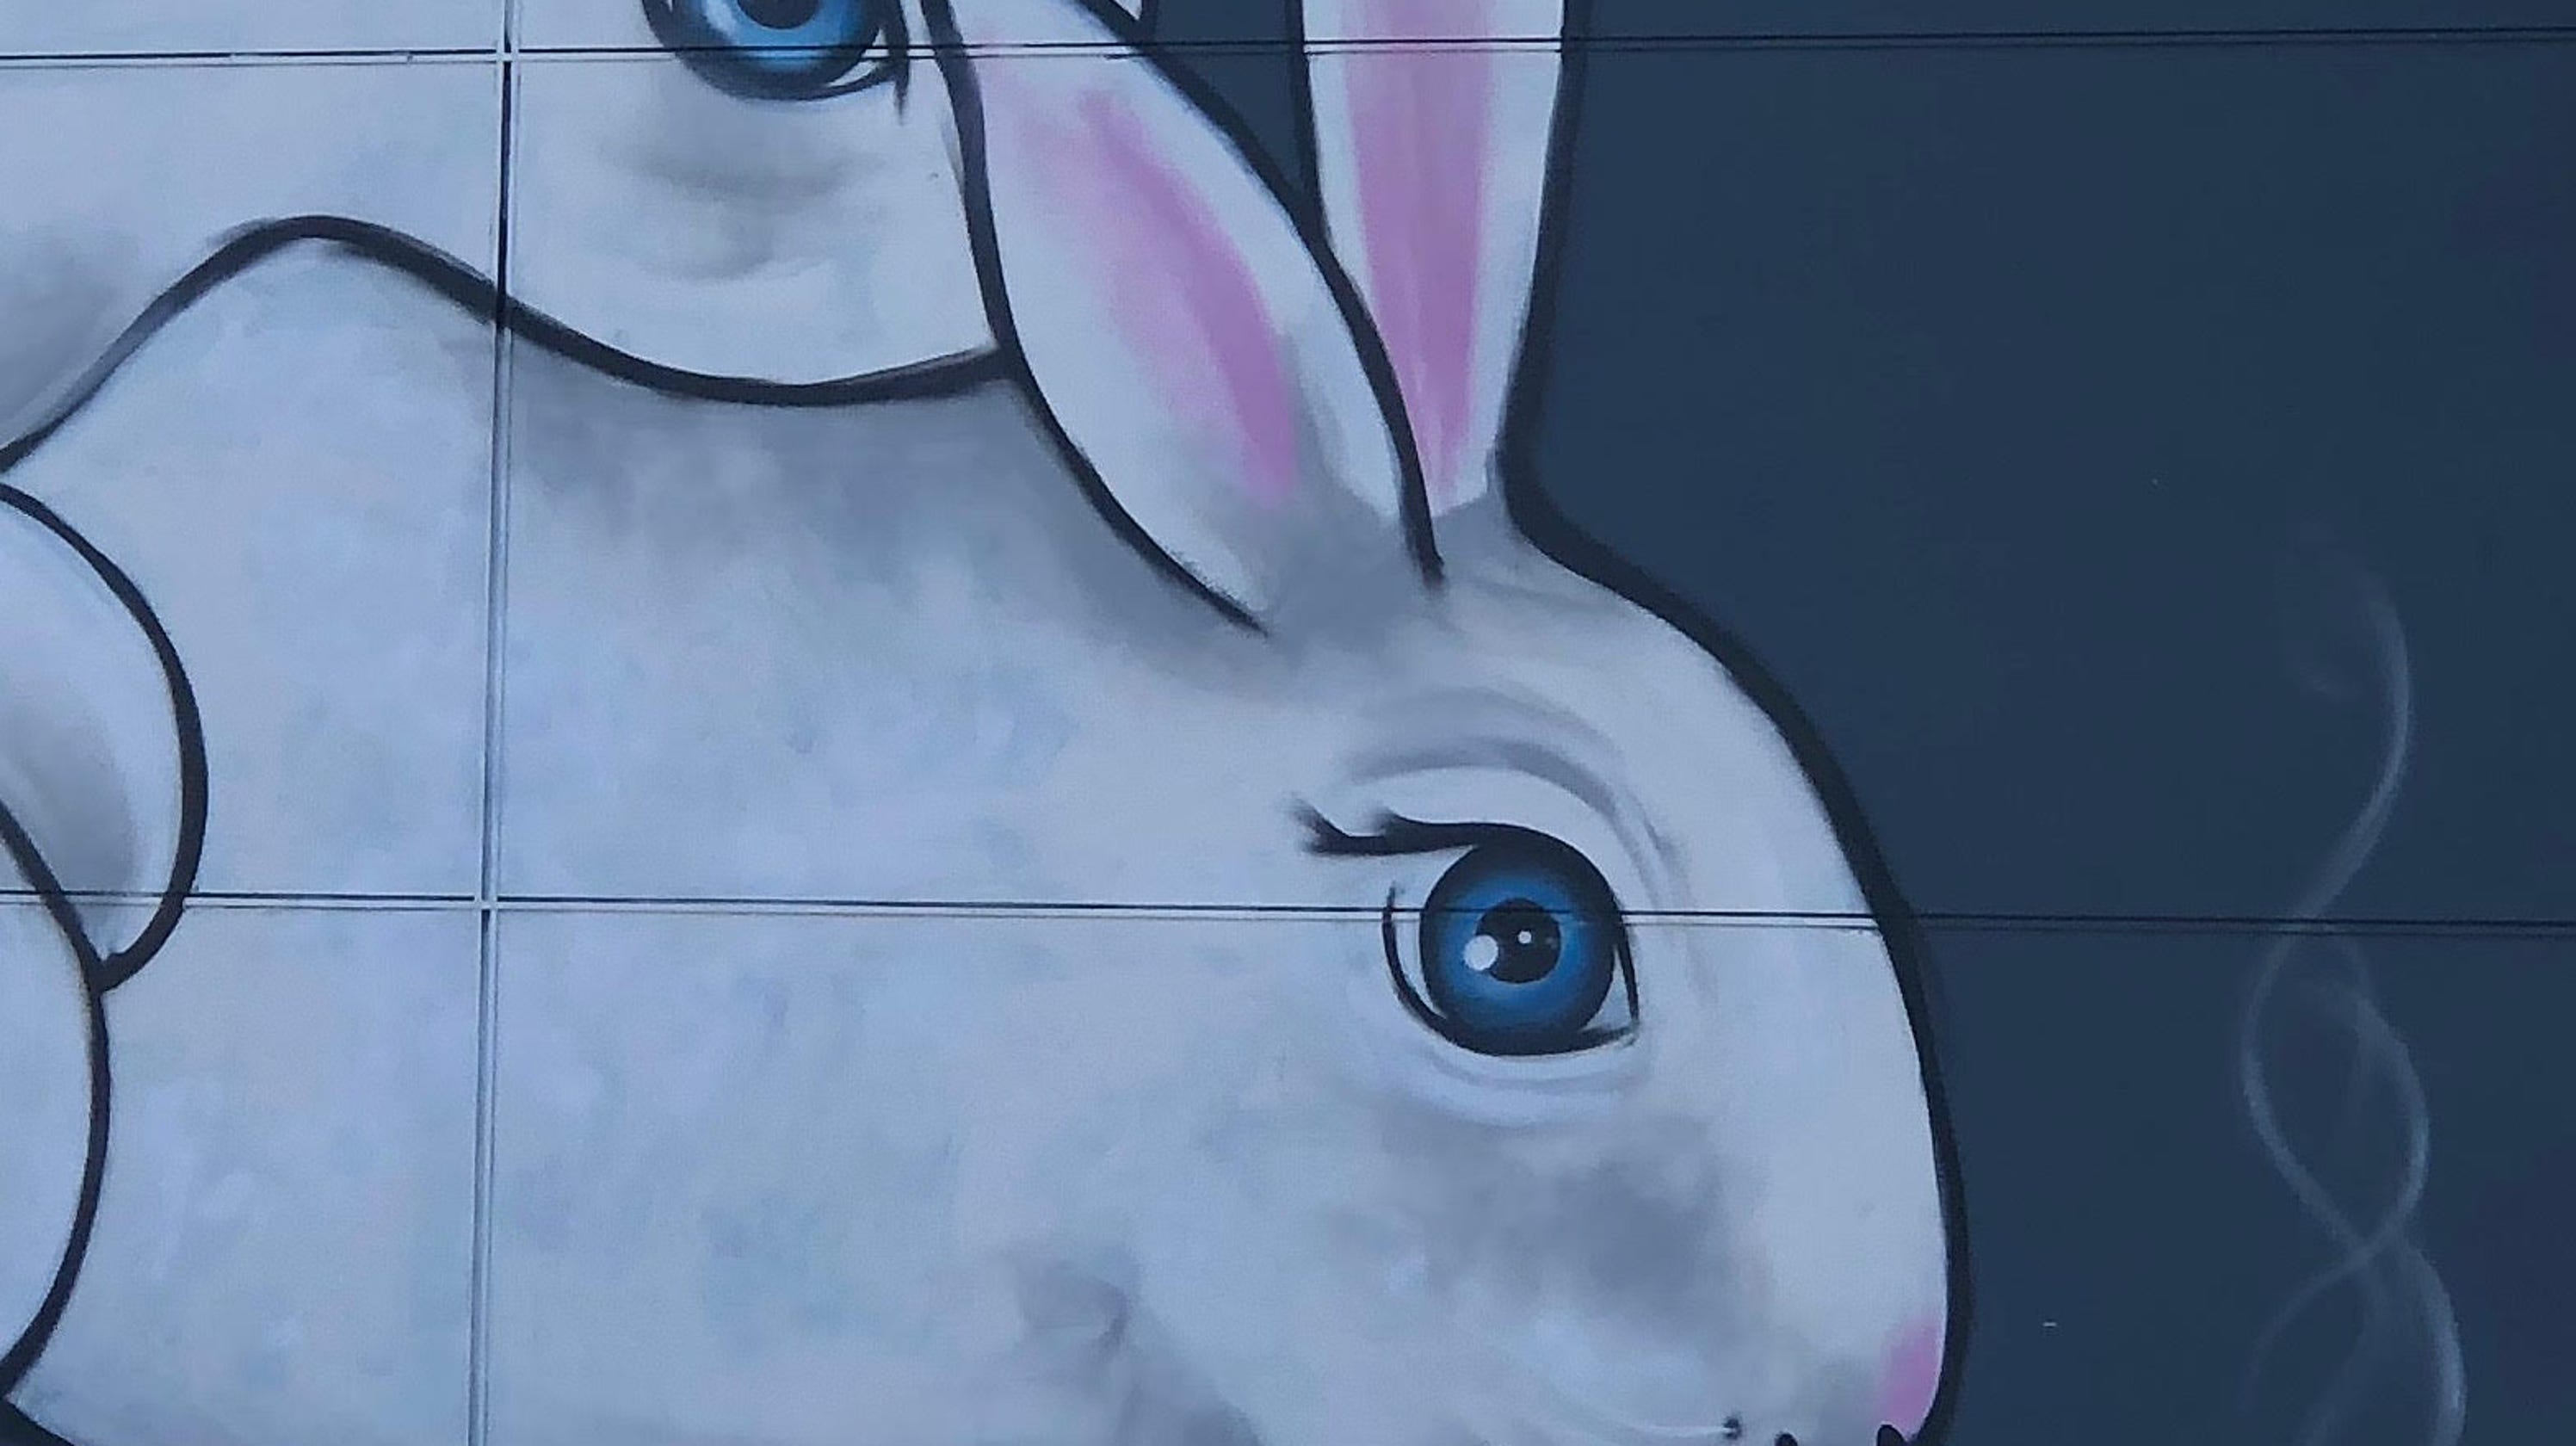 Beholder In Indianapolis Has A Cartoon Mural Of Two Rabbits Having Sex